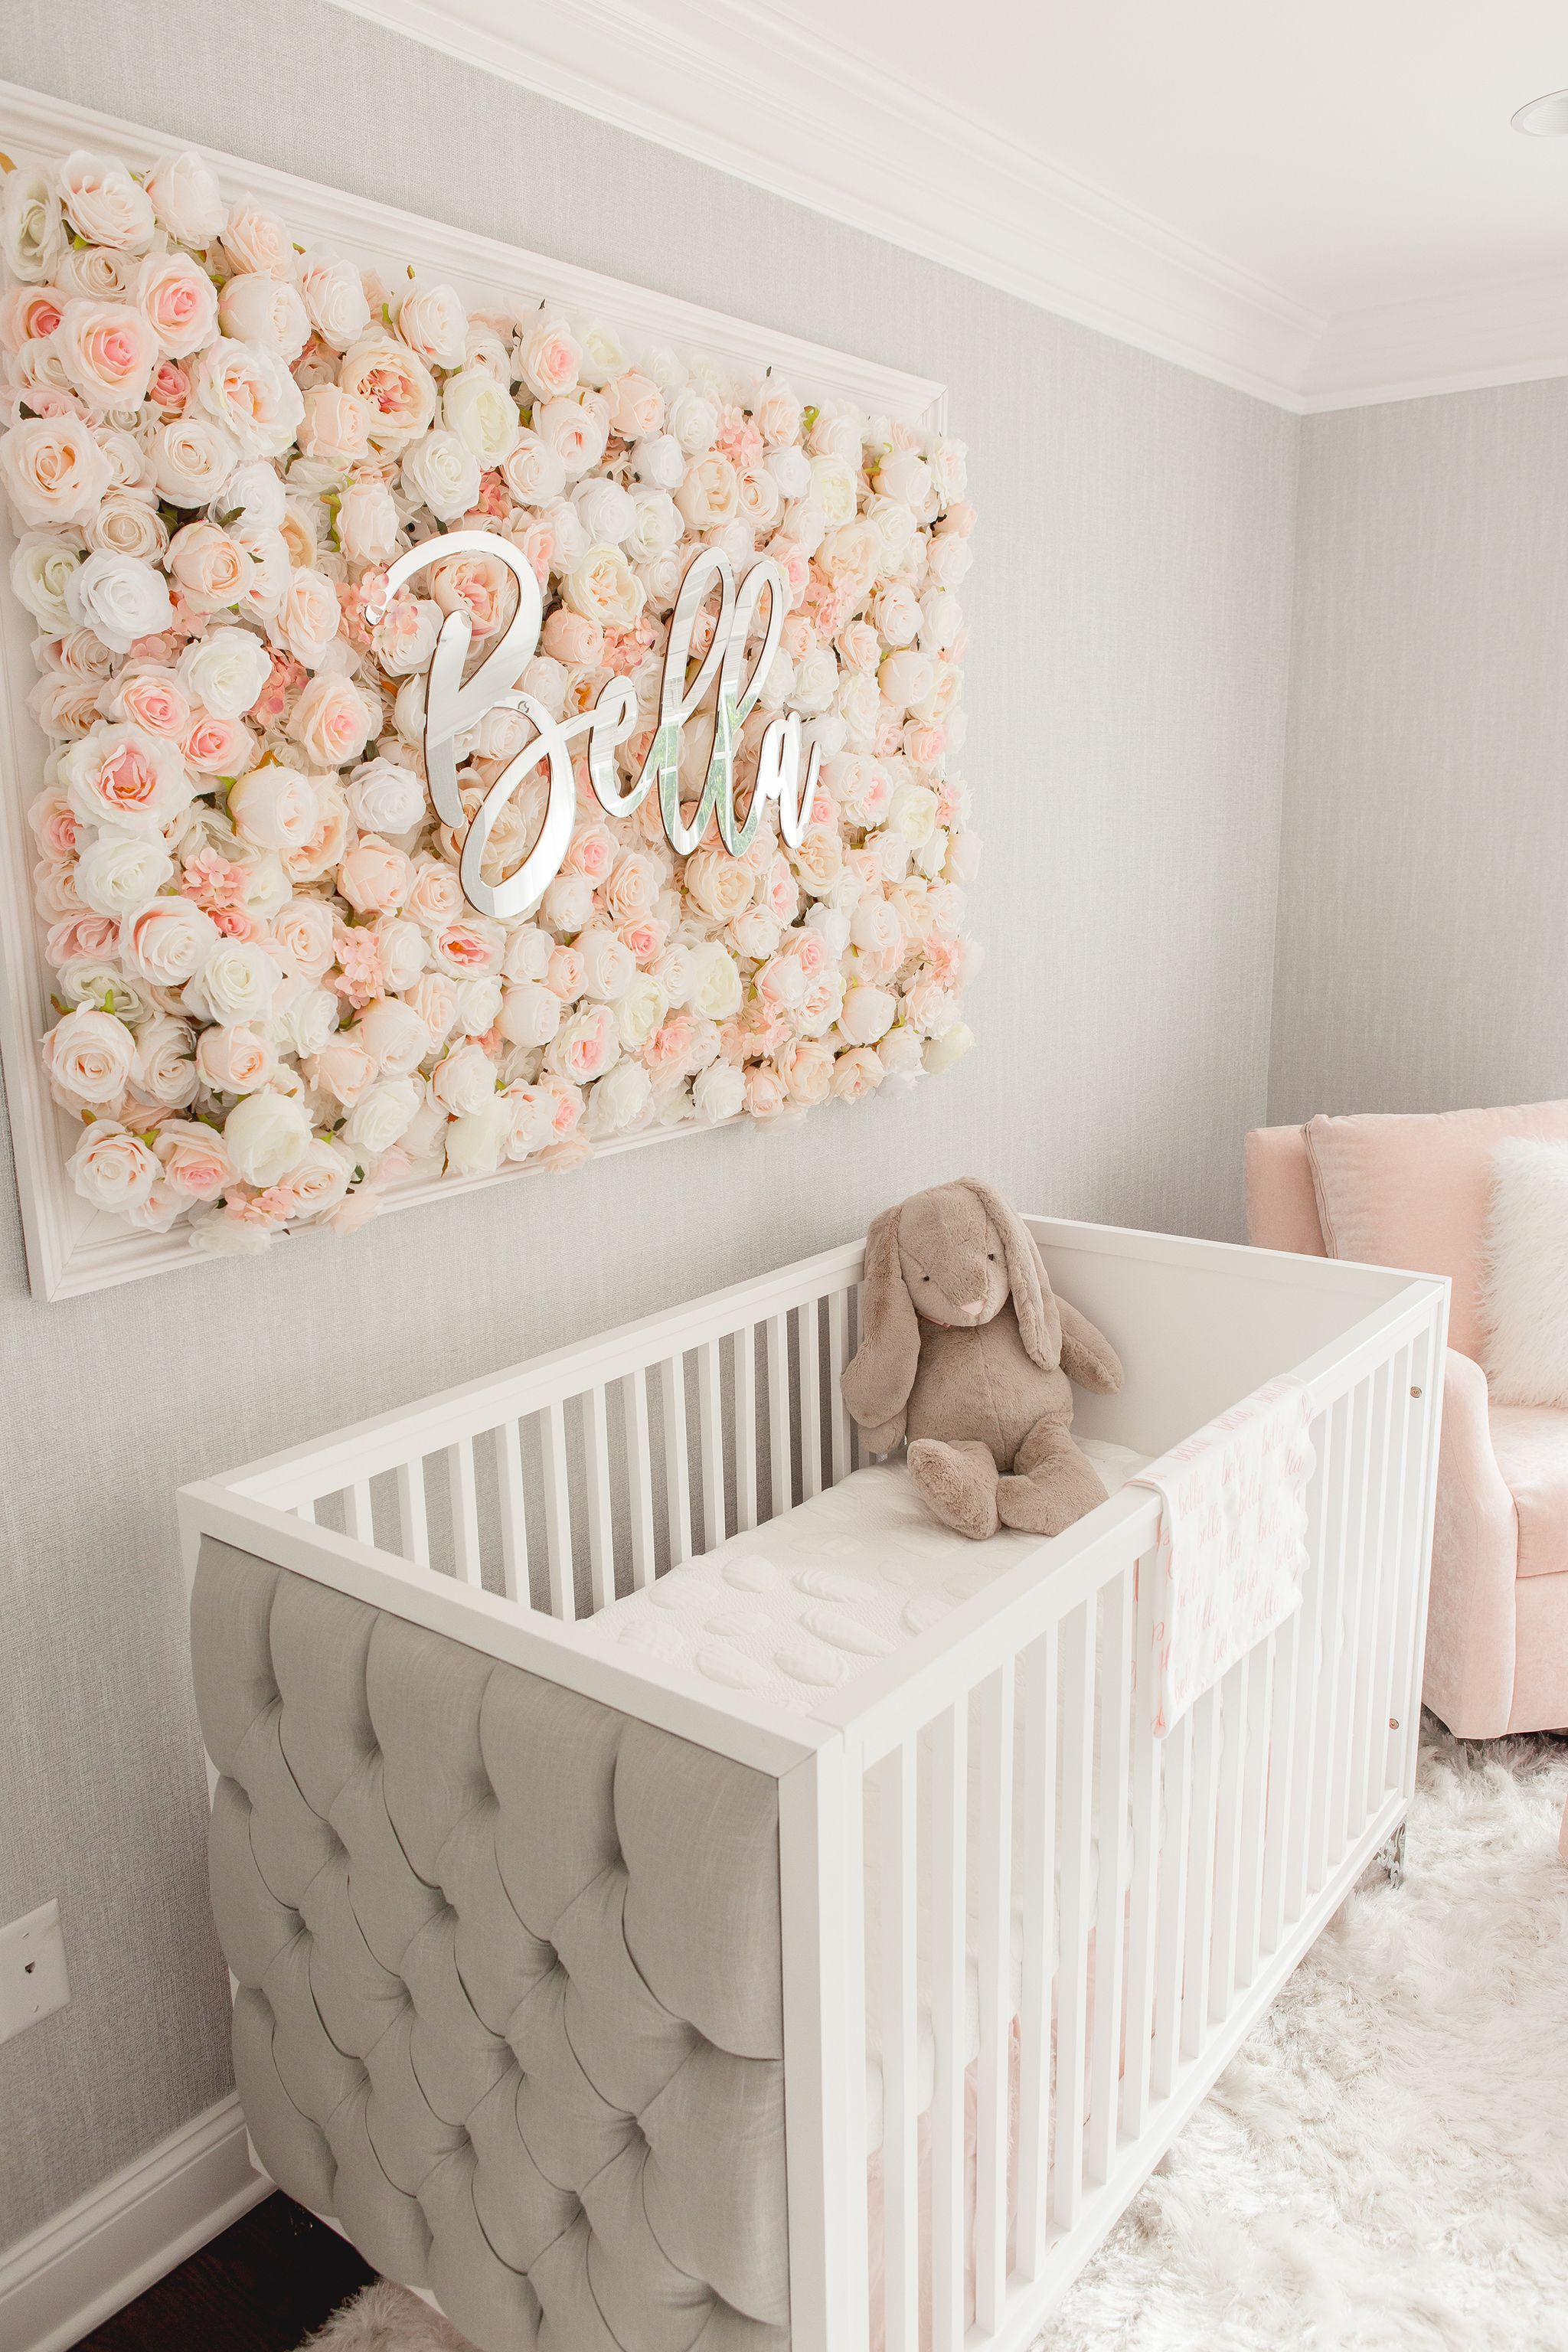 guess which celebrity nursery